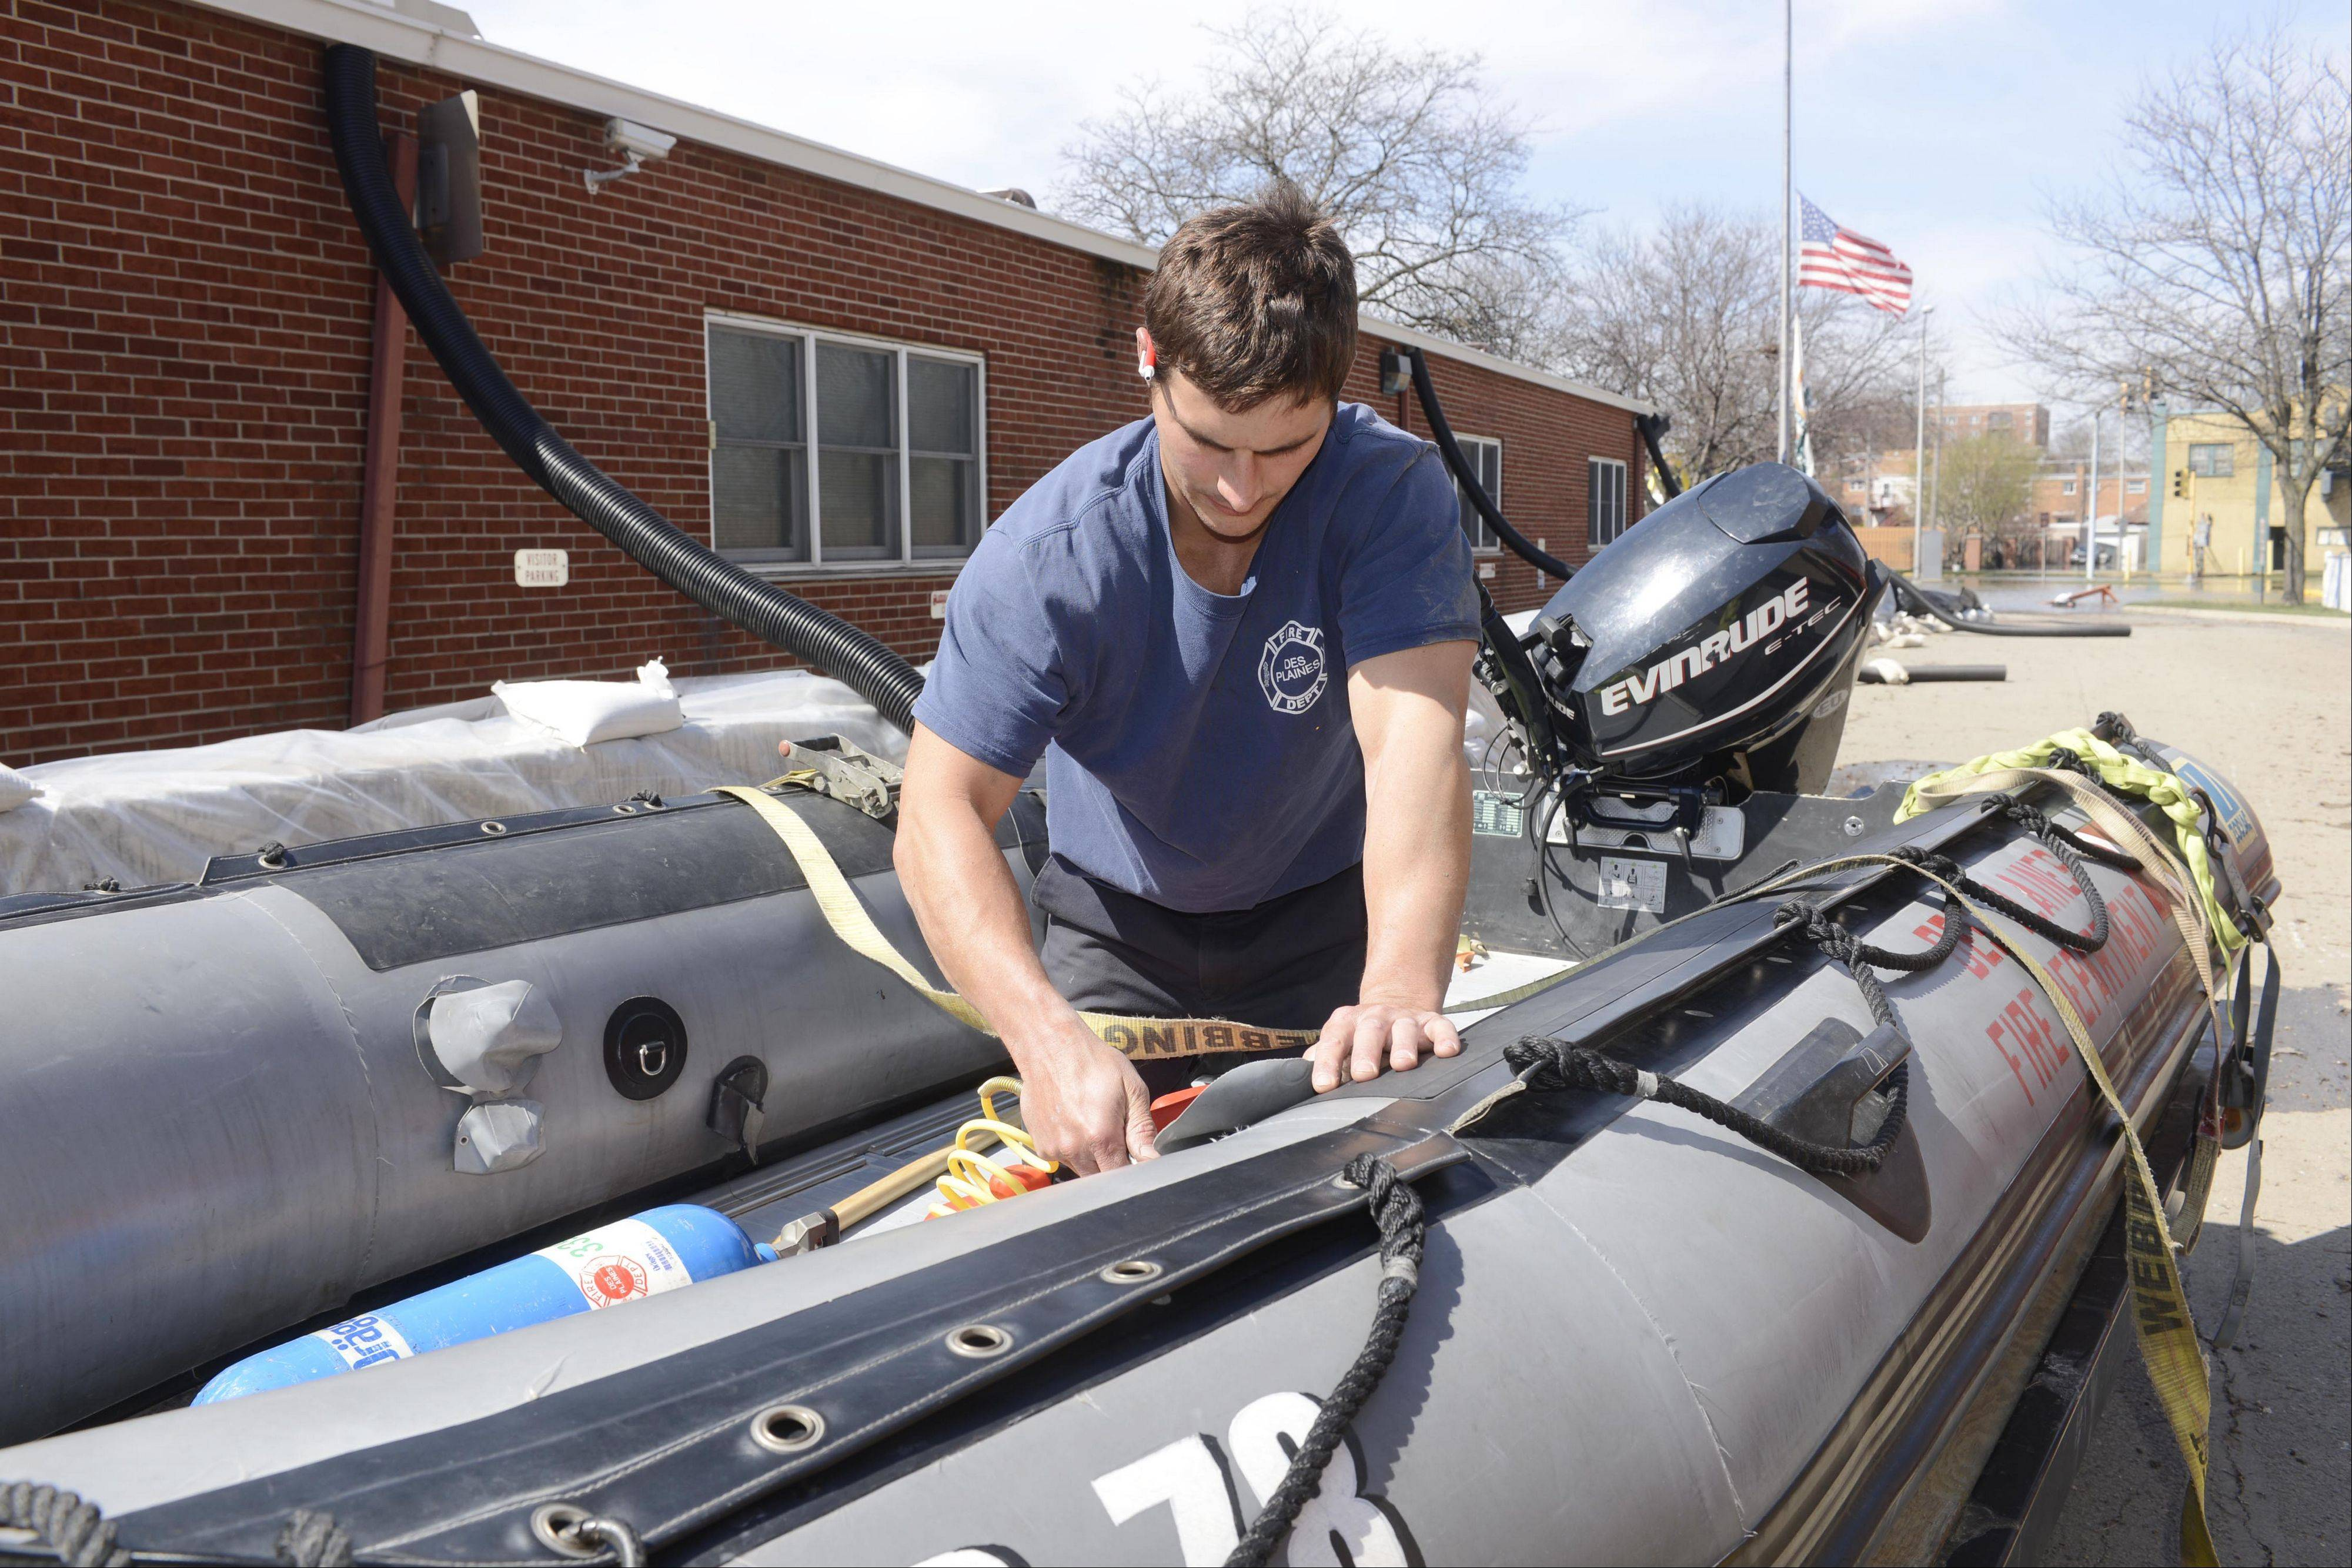 Firefighter/paramedic Ryan Petty gets the department's rescue boat ready for action outside the station at the intersection of River and Rand roads in Des Plaines Monday.